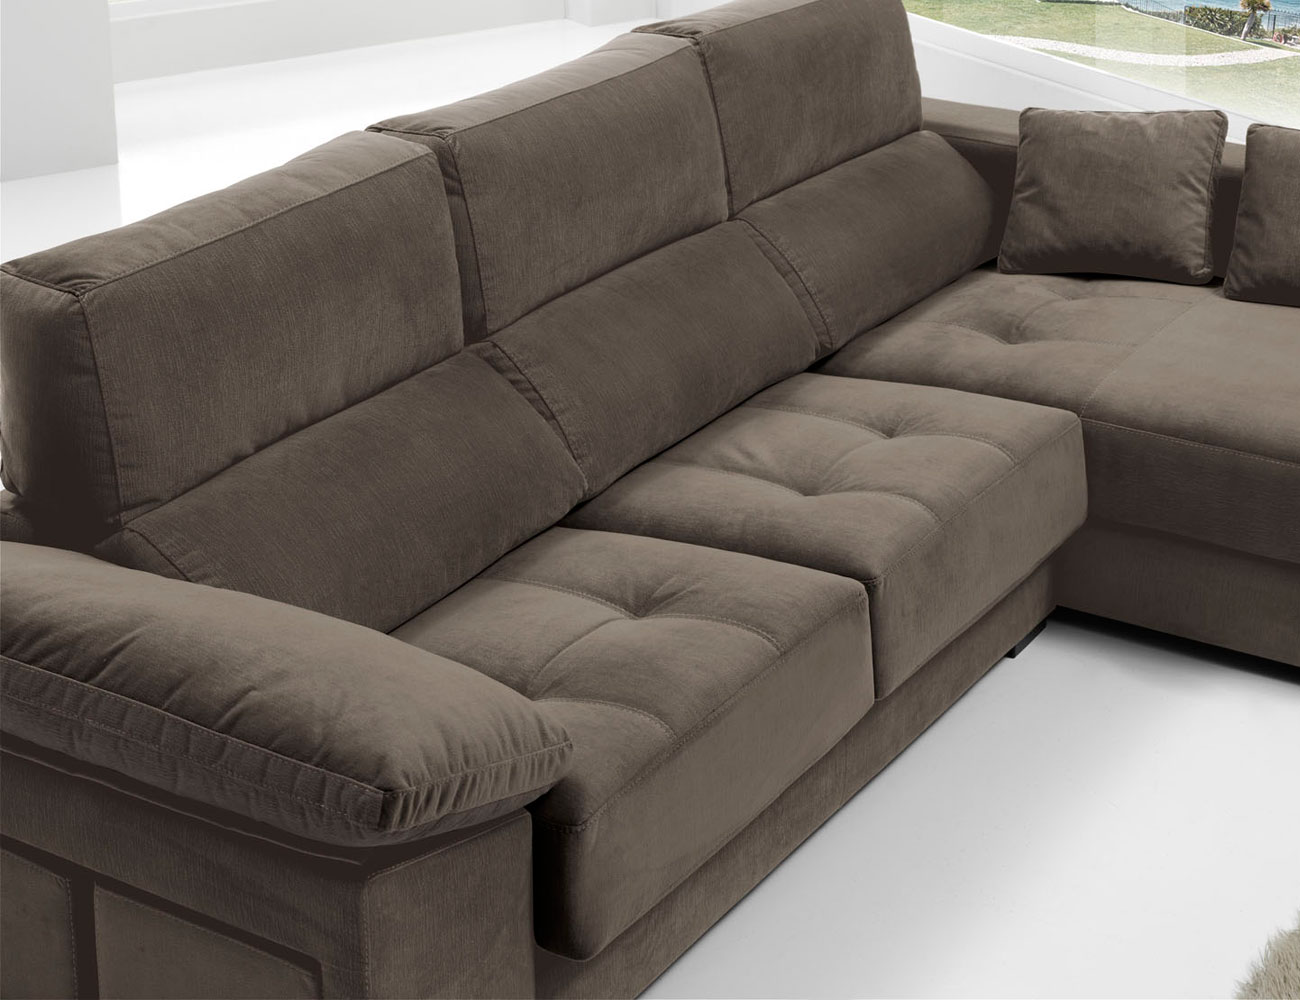 Sofa chaiselongue anti manchas bering pouf 247